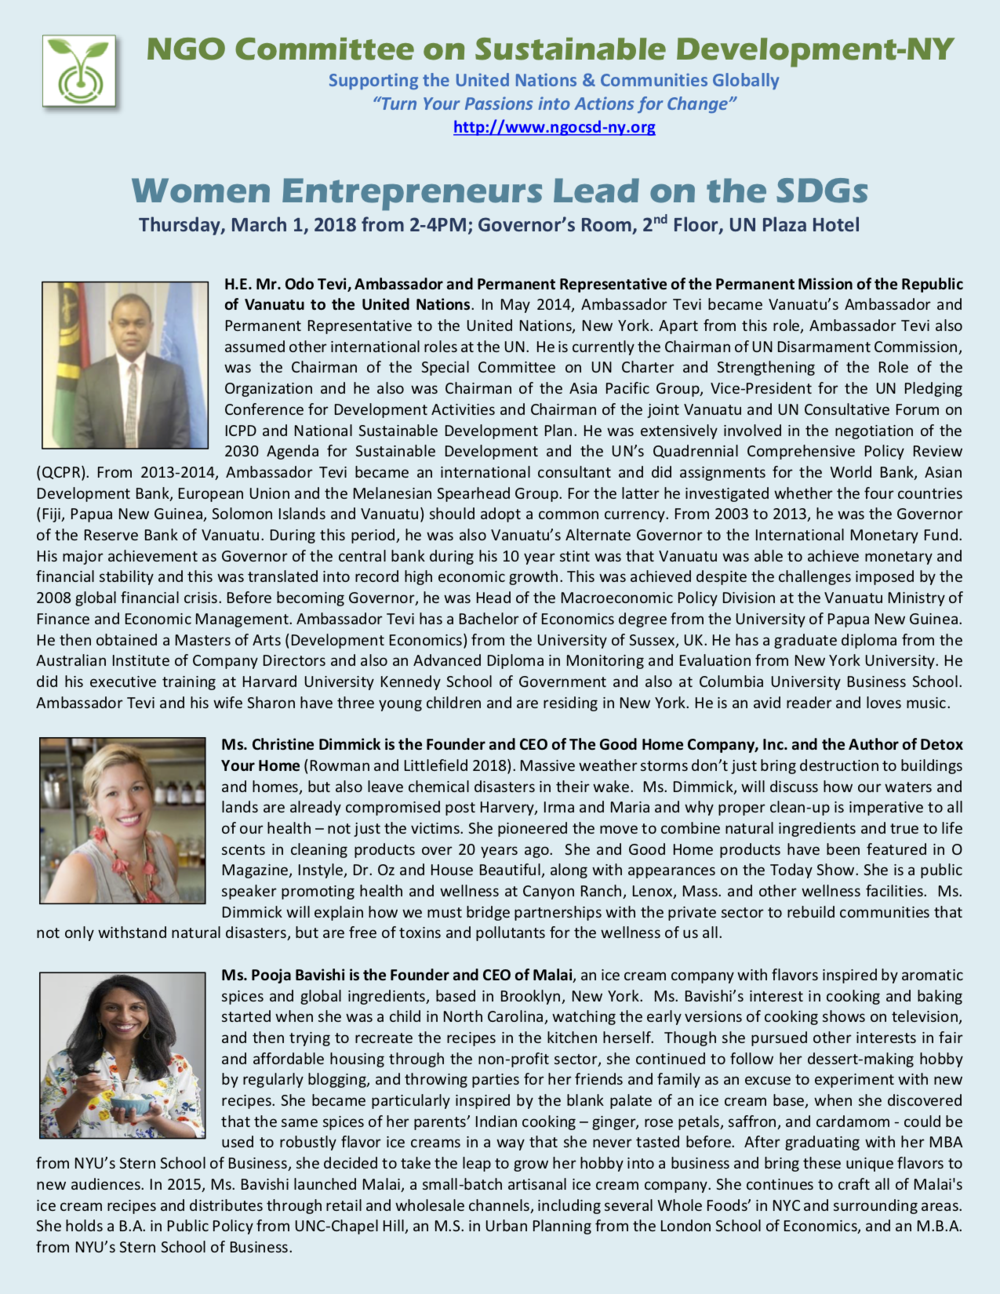 NGOCSD-NY 3-1-18 Women Entrepreneurs Photo Bios A3.png